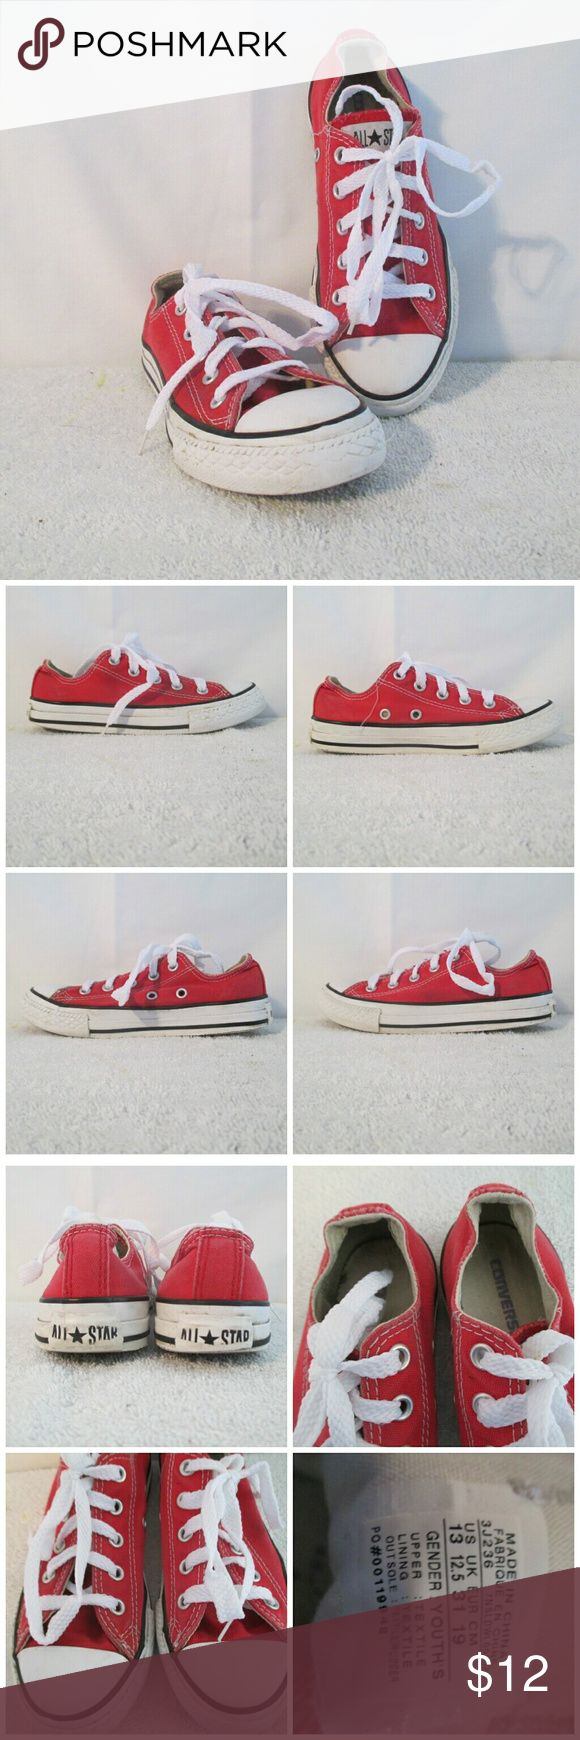 "Red Converse Youth Sneaker Shoes Size 13 Here's a nice looking pair of youths red Converse shoes that are still in good condition with only gentle wear. Stated size is 13. Measures 9.75"" from heel to toe and 3.25"" widest sole width. Converse Shoes Sneakers"